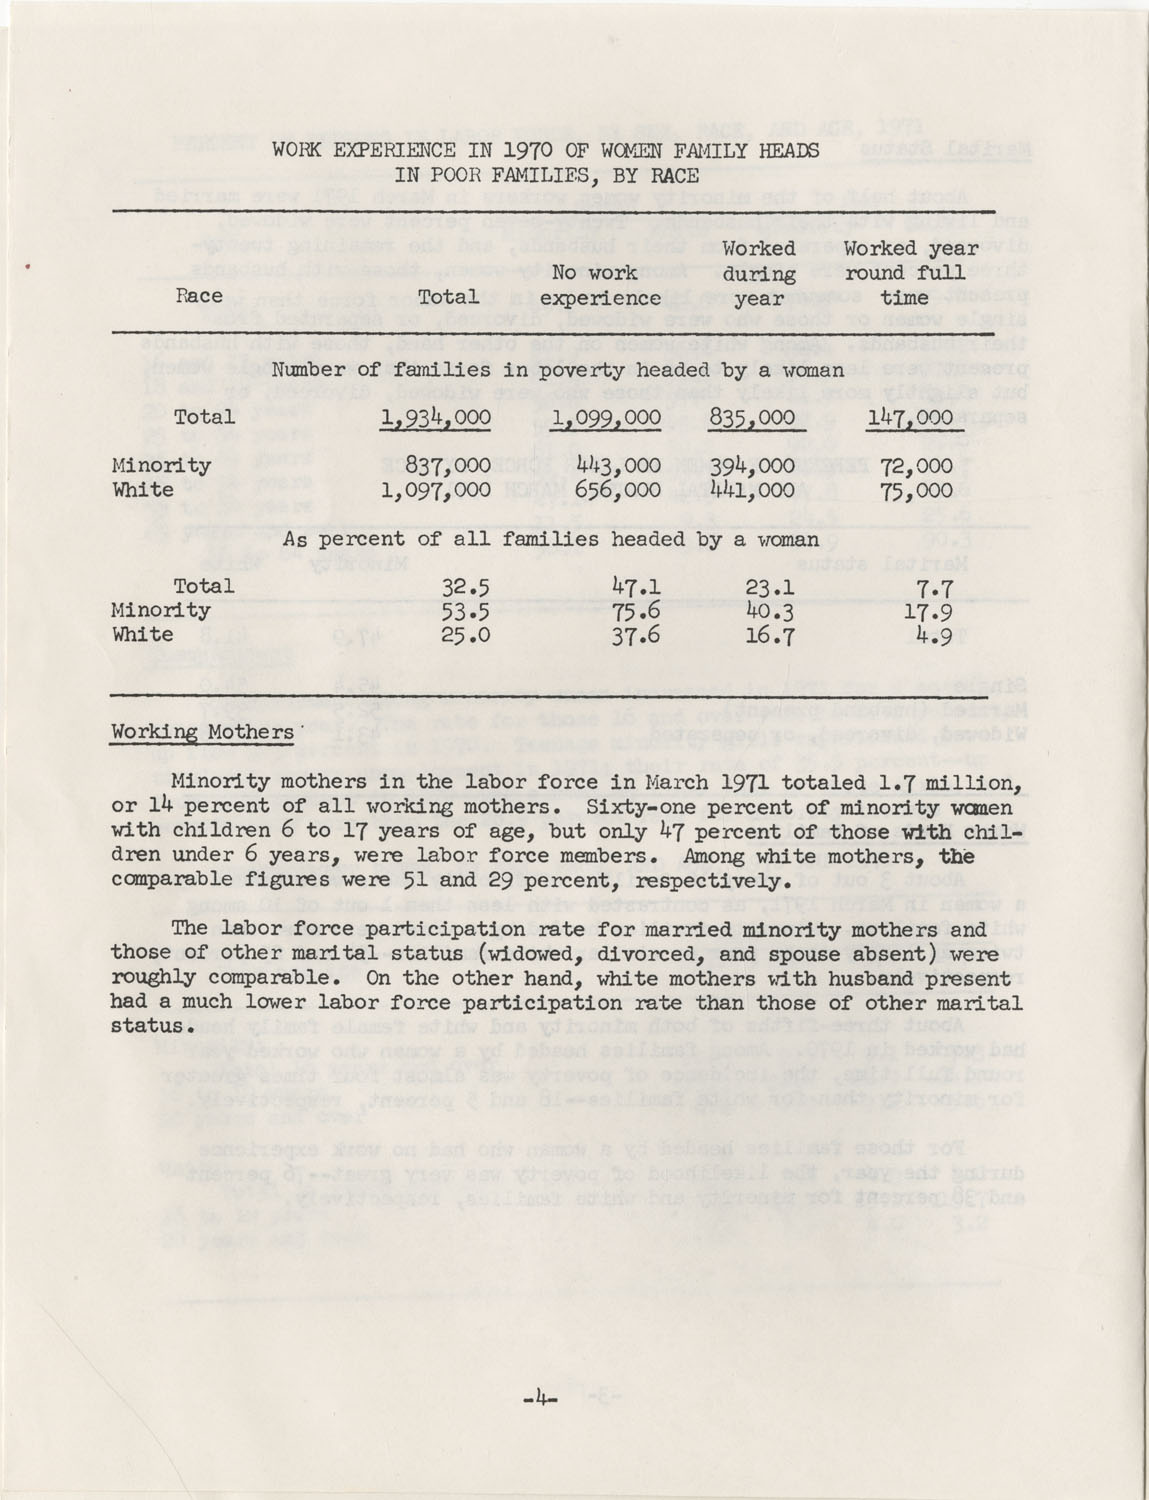 Facts on Women Workers of Minority Races, U.S. Department of Labor, June 1972, Page 4